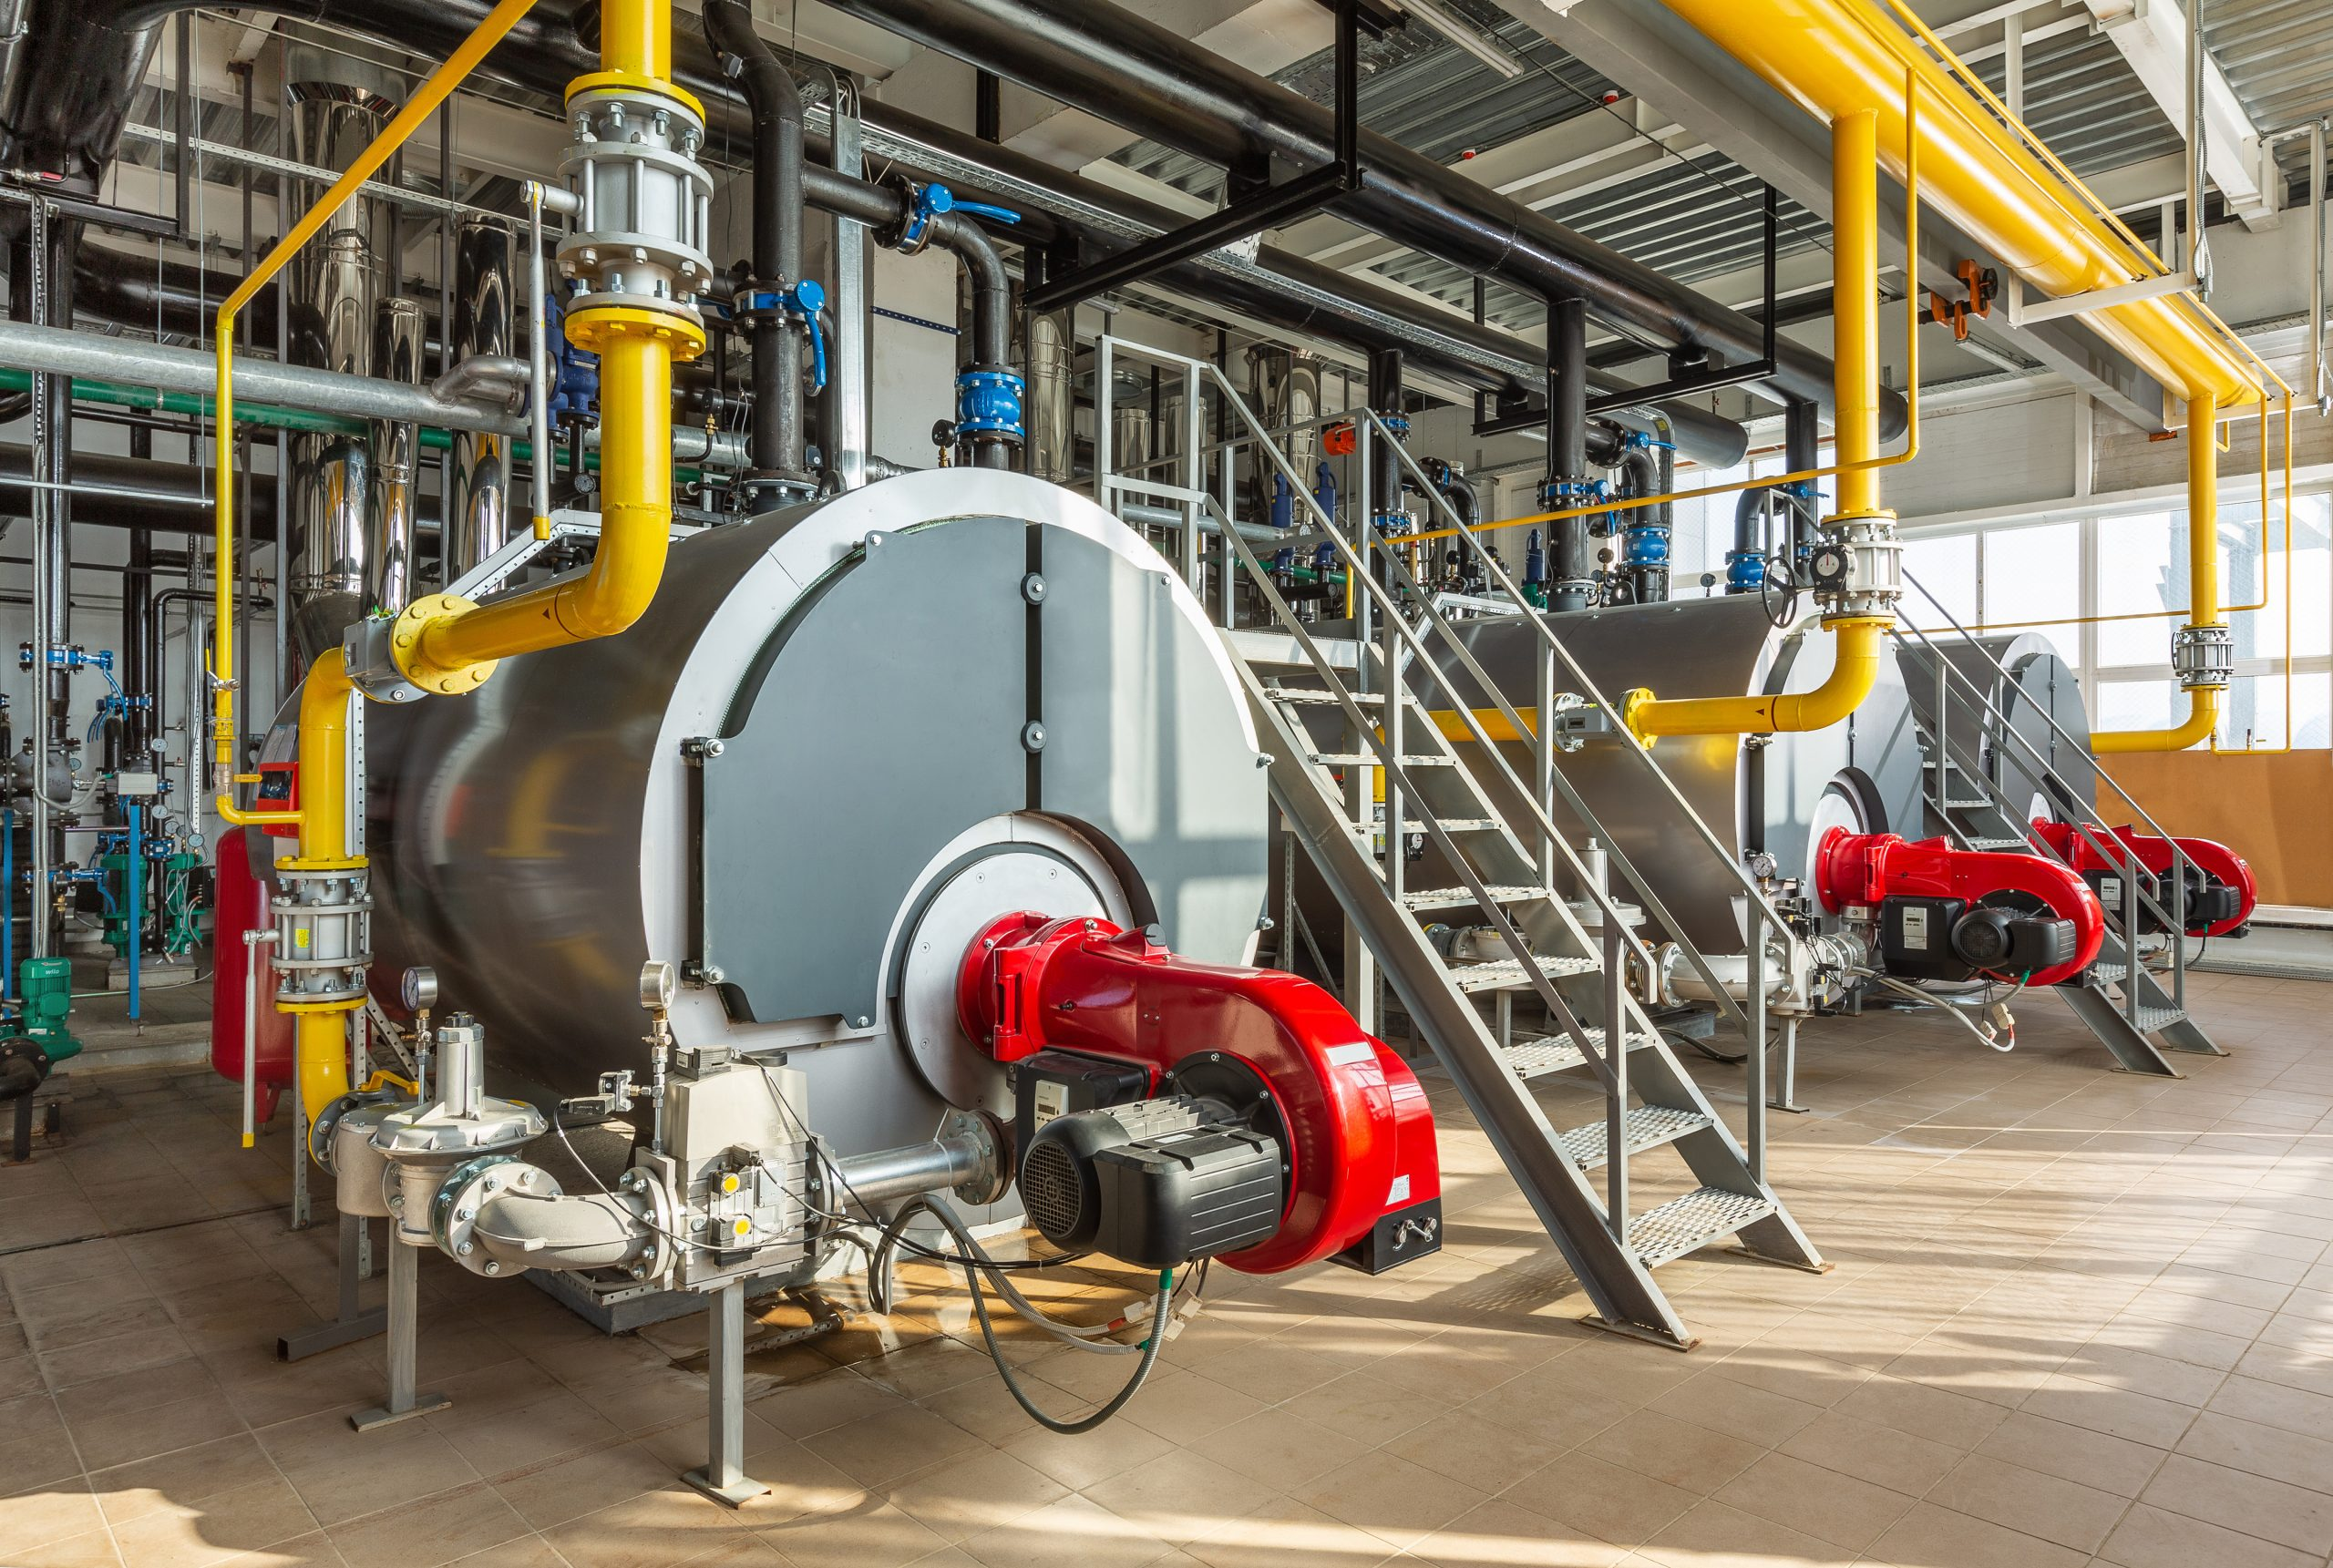 EPA Issues Proposed Revisions to Subpart DDDDD (Boiler MACT Rule)